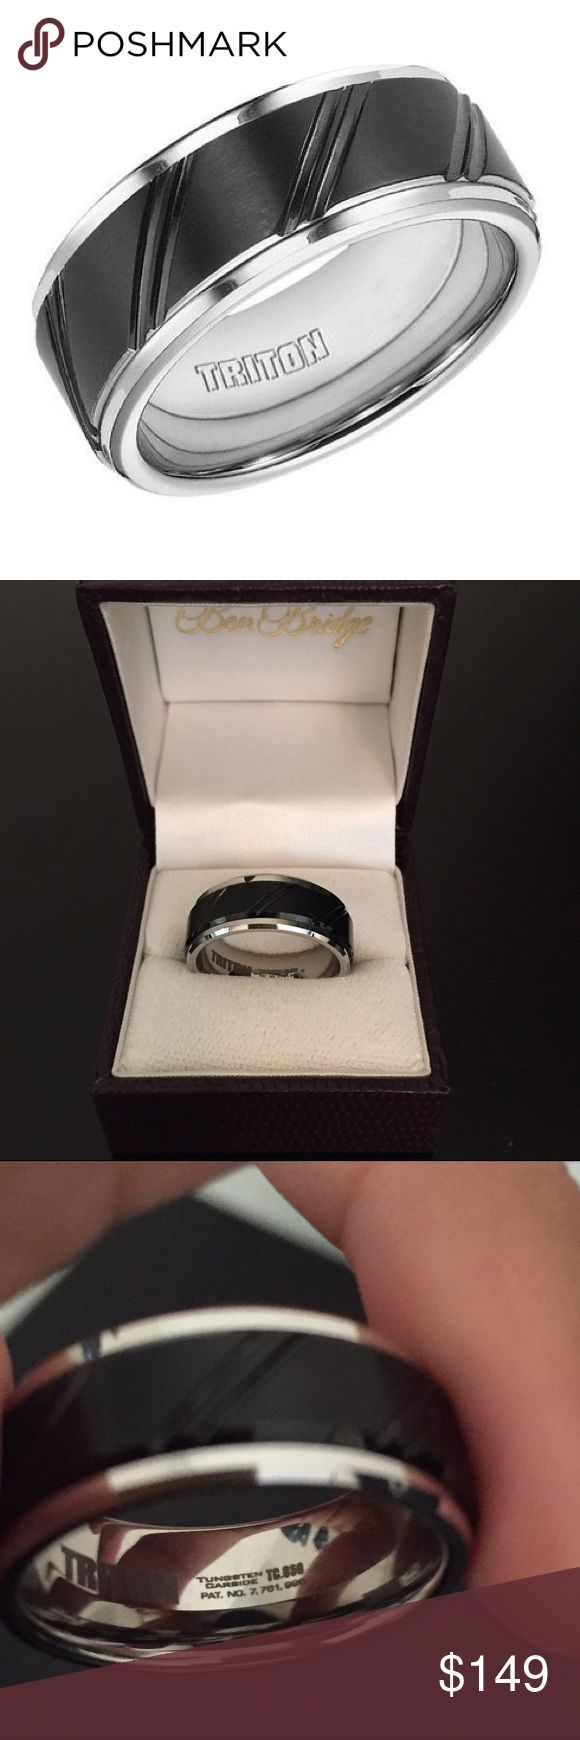 TRITON Black & White Tungsten Carbide Band BRAND NEW NEVER WORN! My boyfriend has never worn it. From TRITON, white tungsten carbide and black tungsten carbide comfort fit band features a diagonal line cut design. All TRITON tungsten carbide bands contain a patented TC.850 formula for a scratch resistant forever polished luster! 😊 Triton Accessories Jewelry